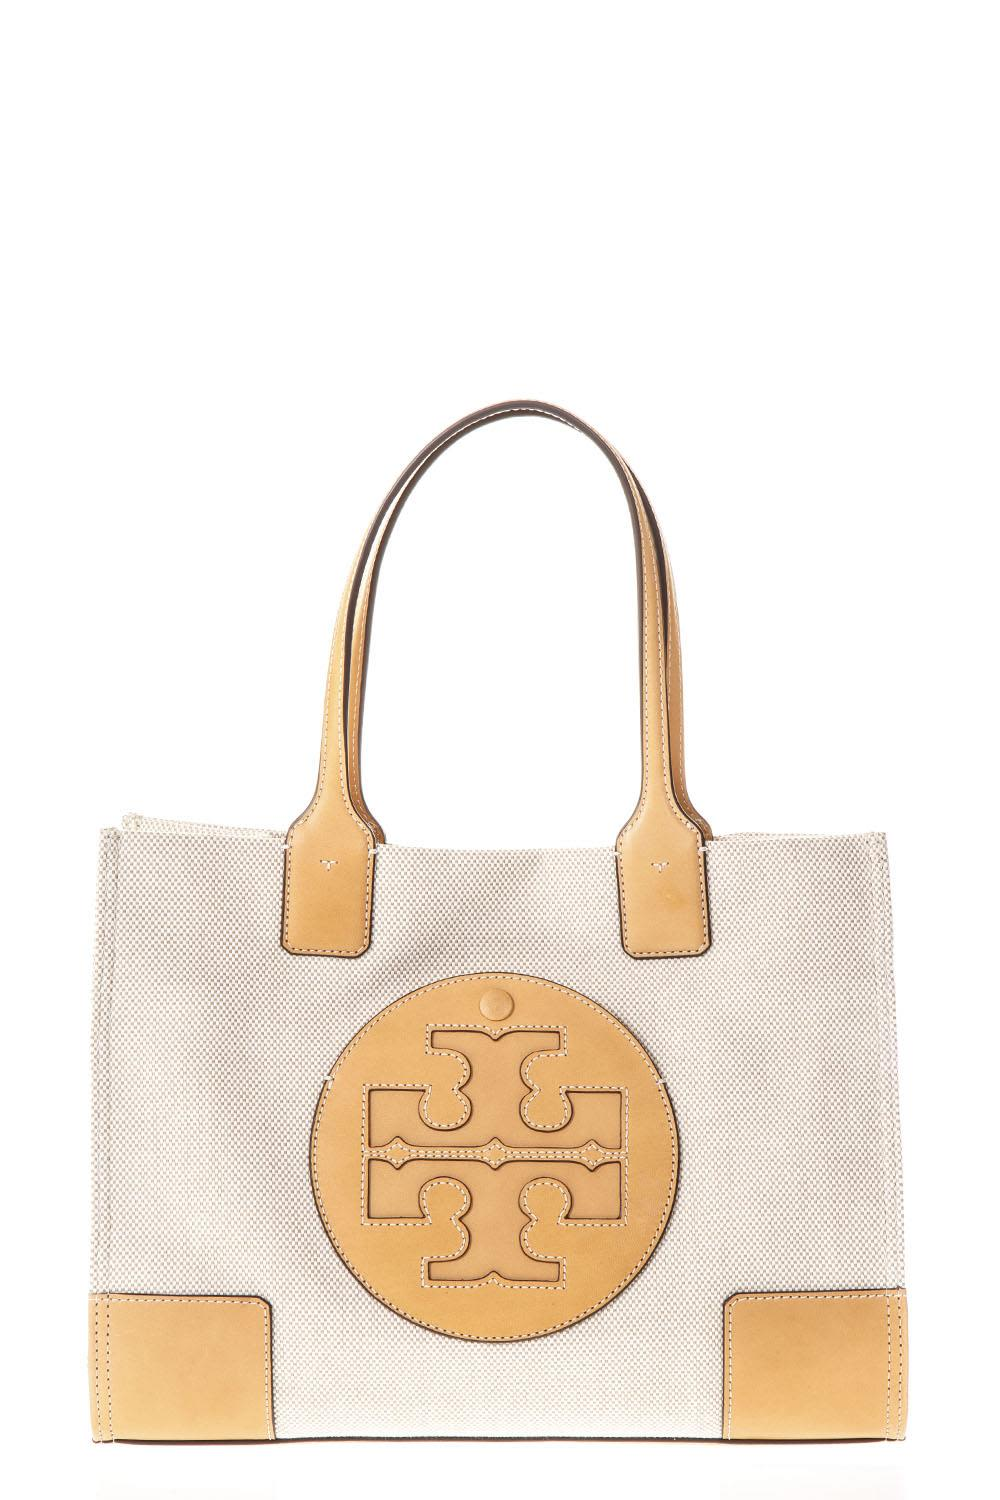 Tory Burch Ella Natural Canvas & Leather Tote